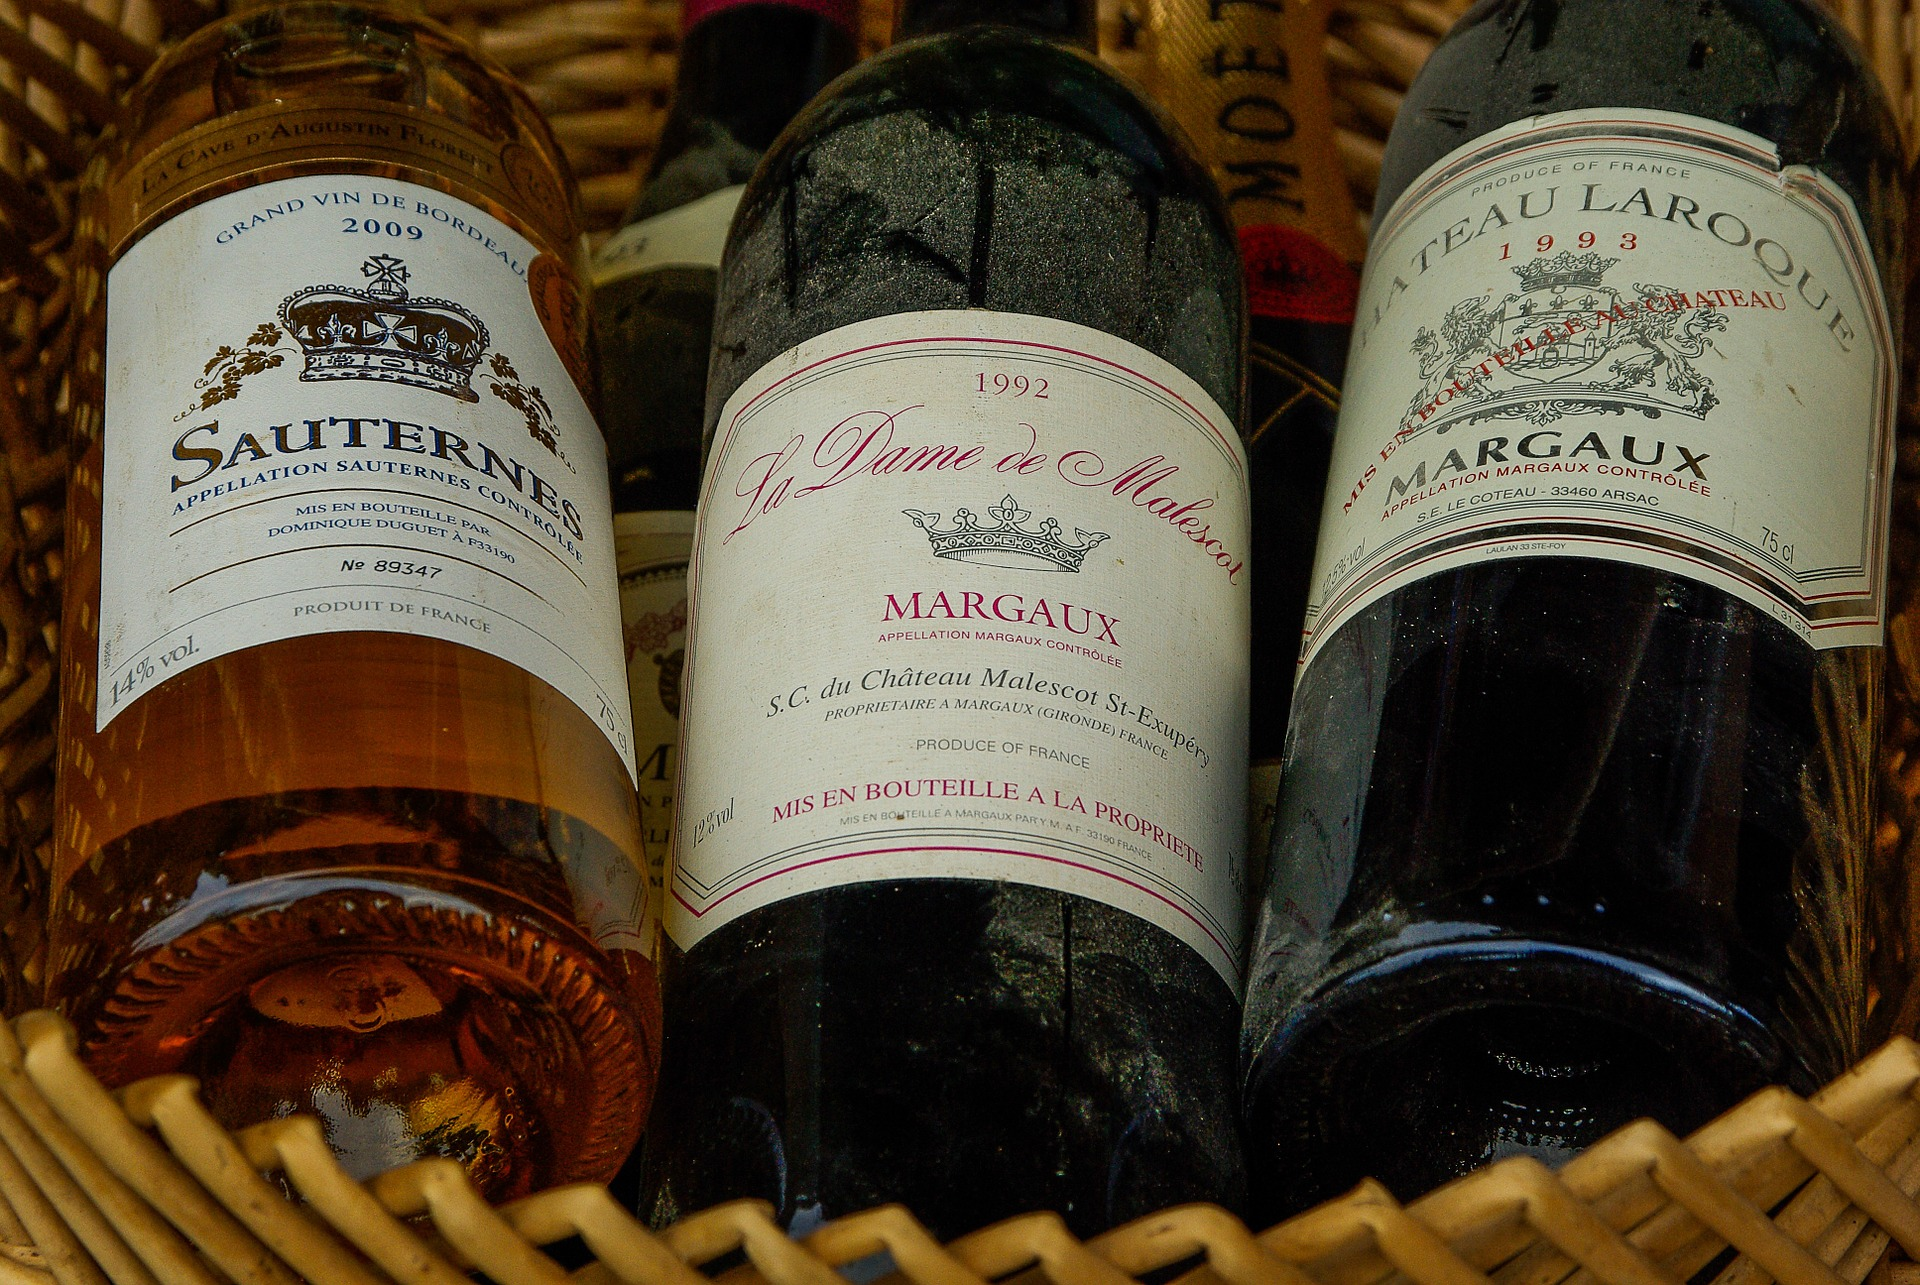 French wine bottles in phoenix